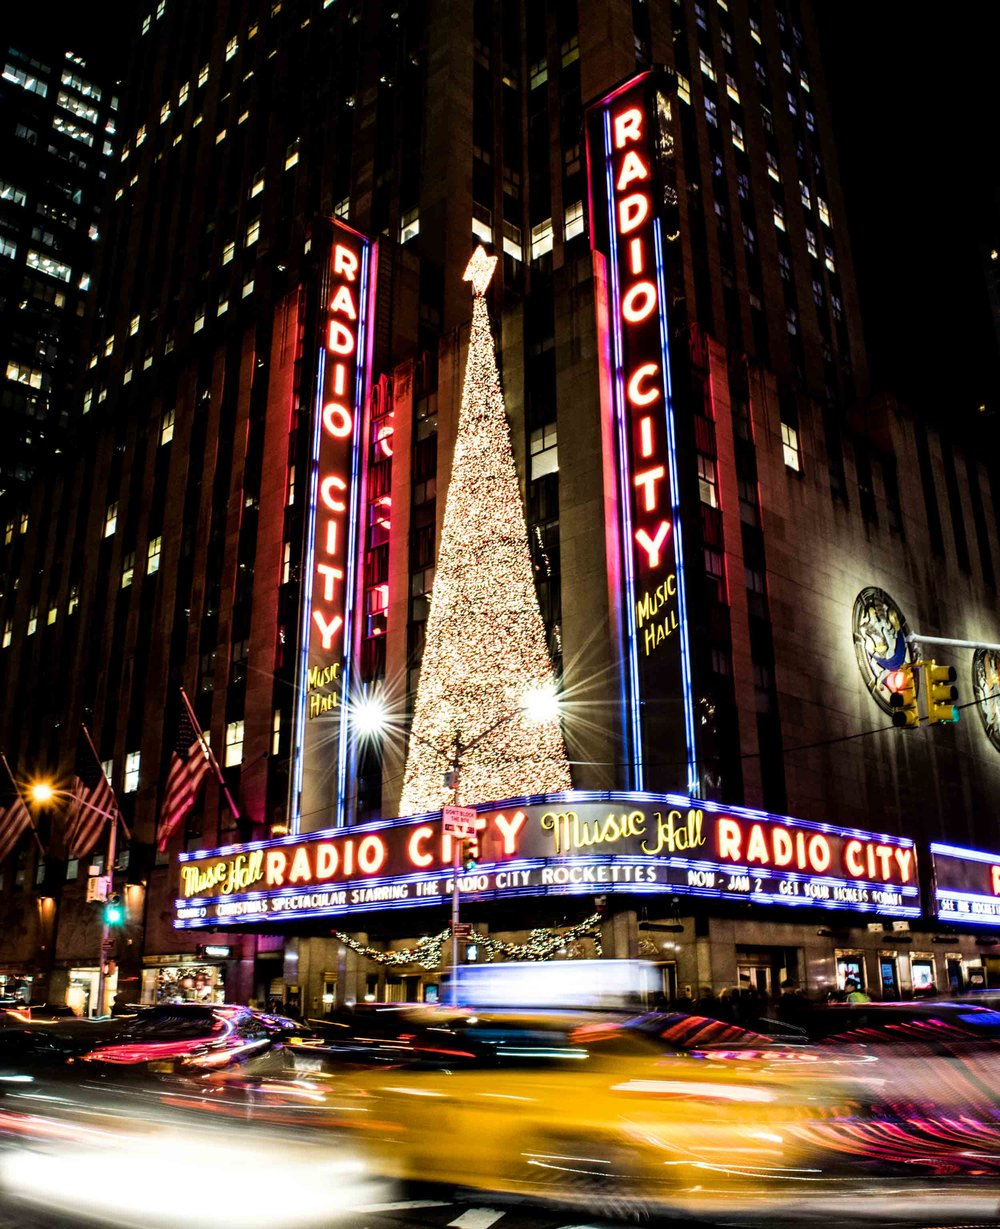 Radio City Music Hall showing the Christmas Spectacular starring the Rockettes with the blur of New York traffic and yellow taxi cabs below.